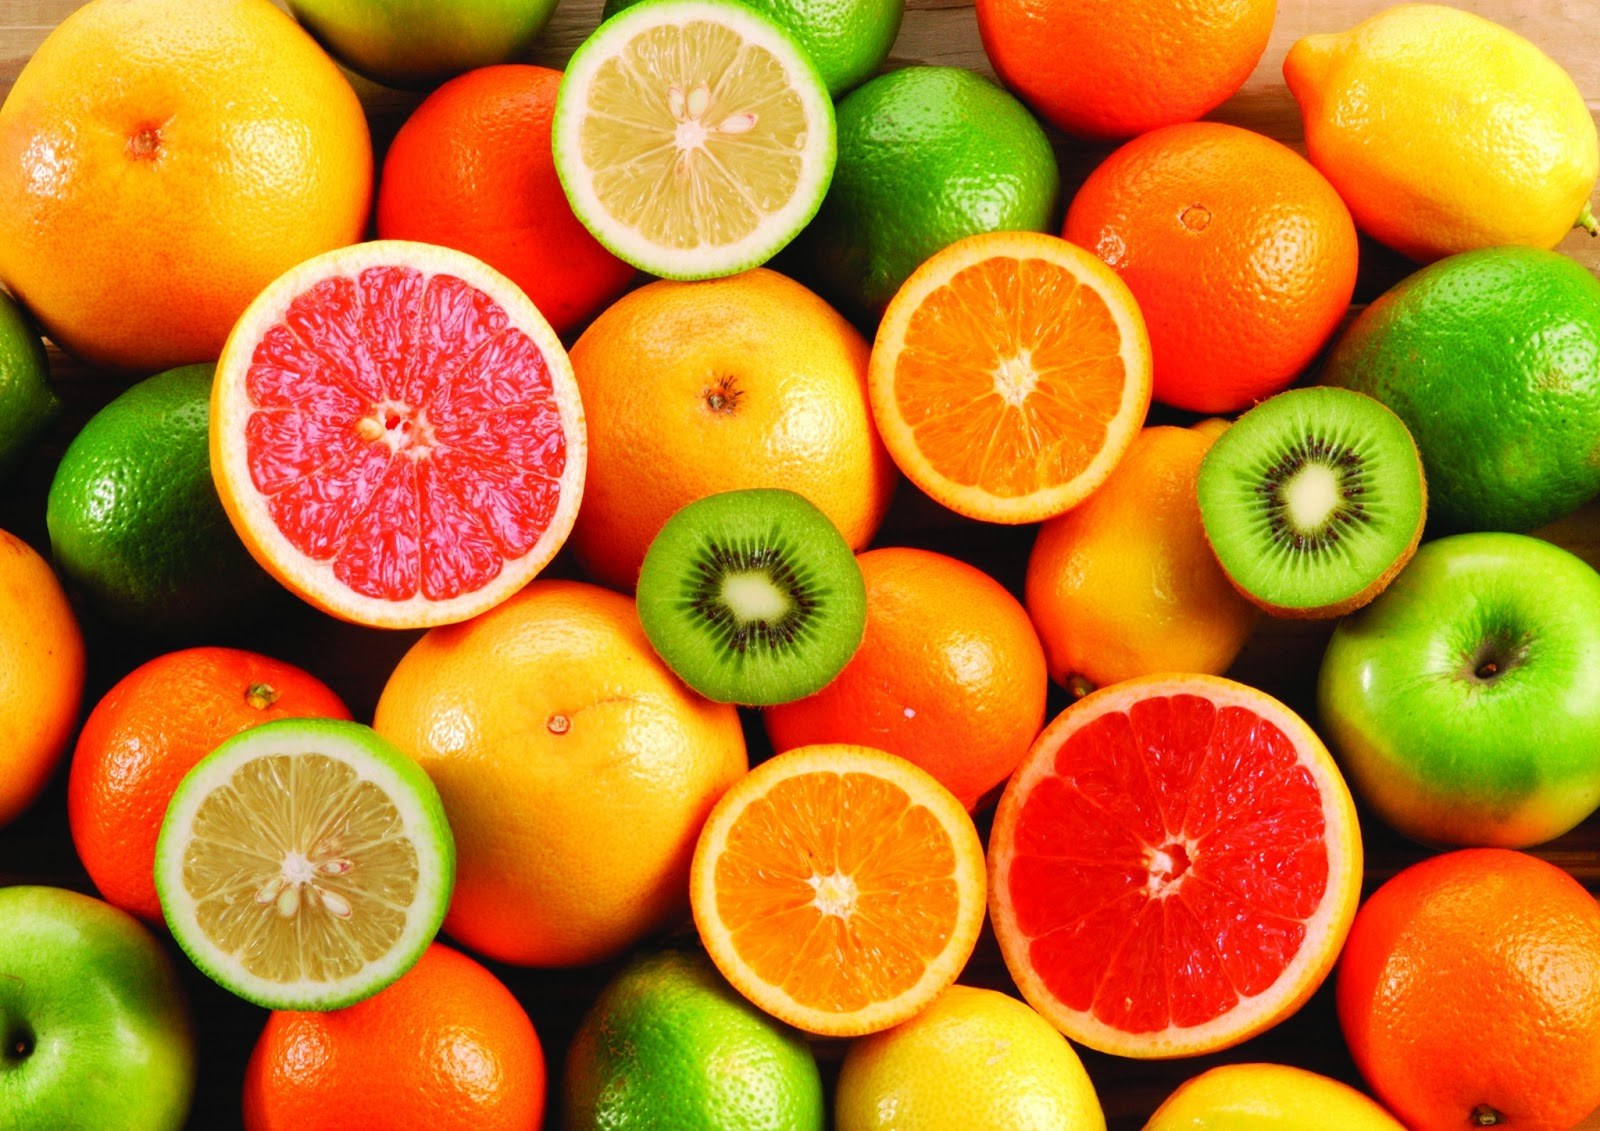 All fruit image free stock photos download (68,356 free stock.